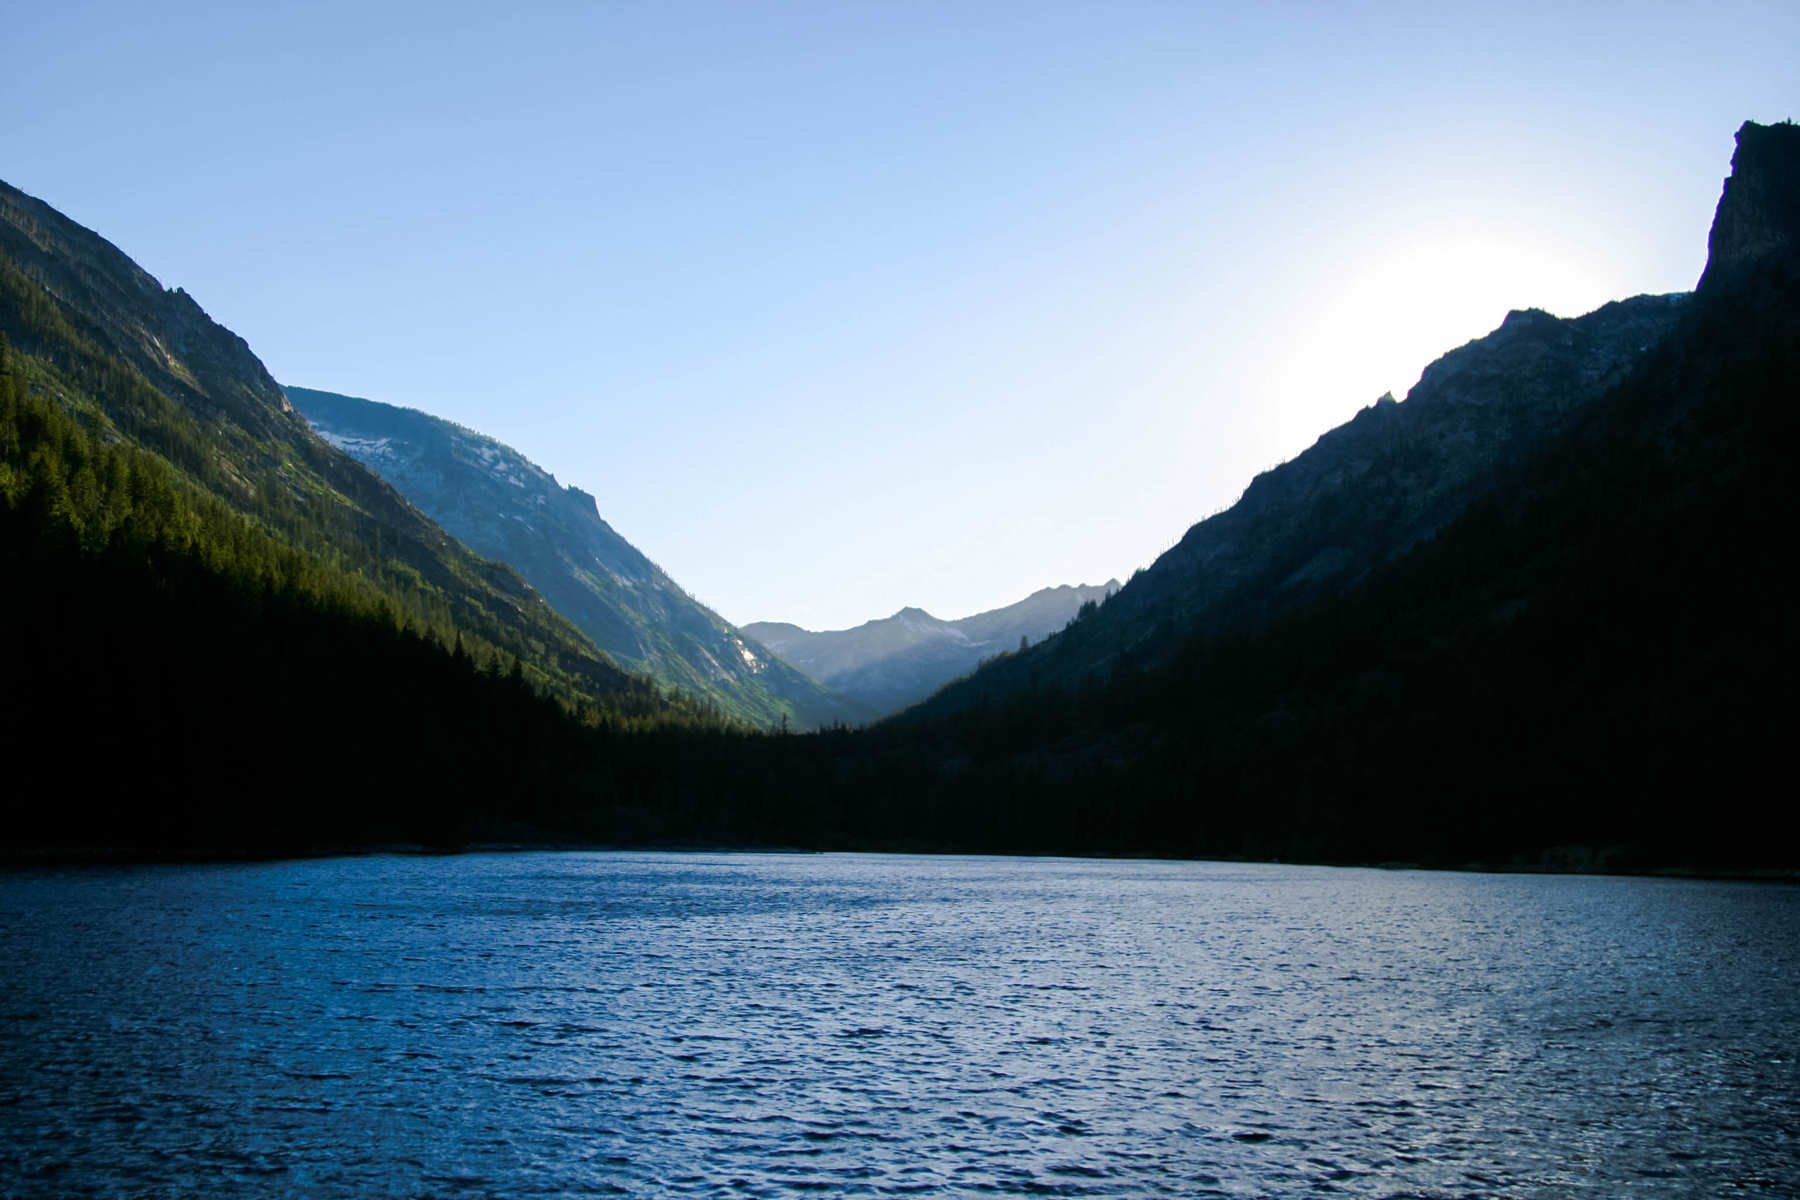 Lakes and distant mountains scenery 52244